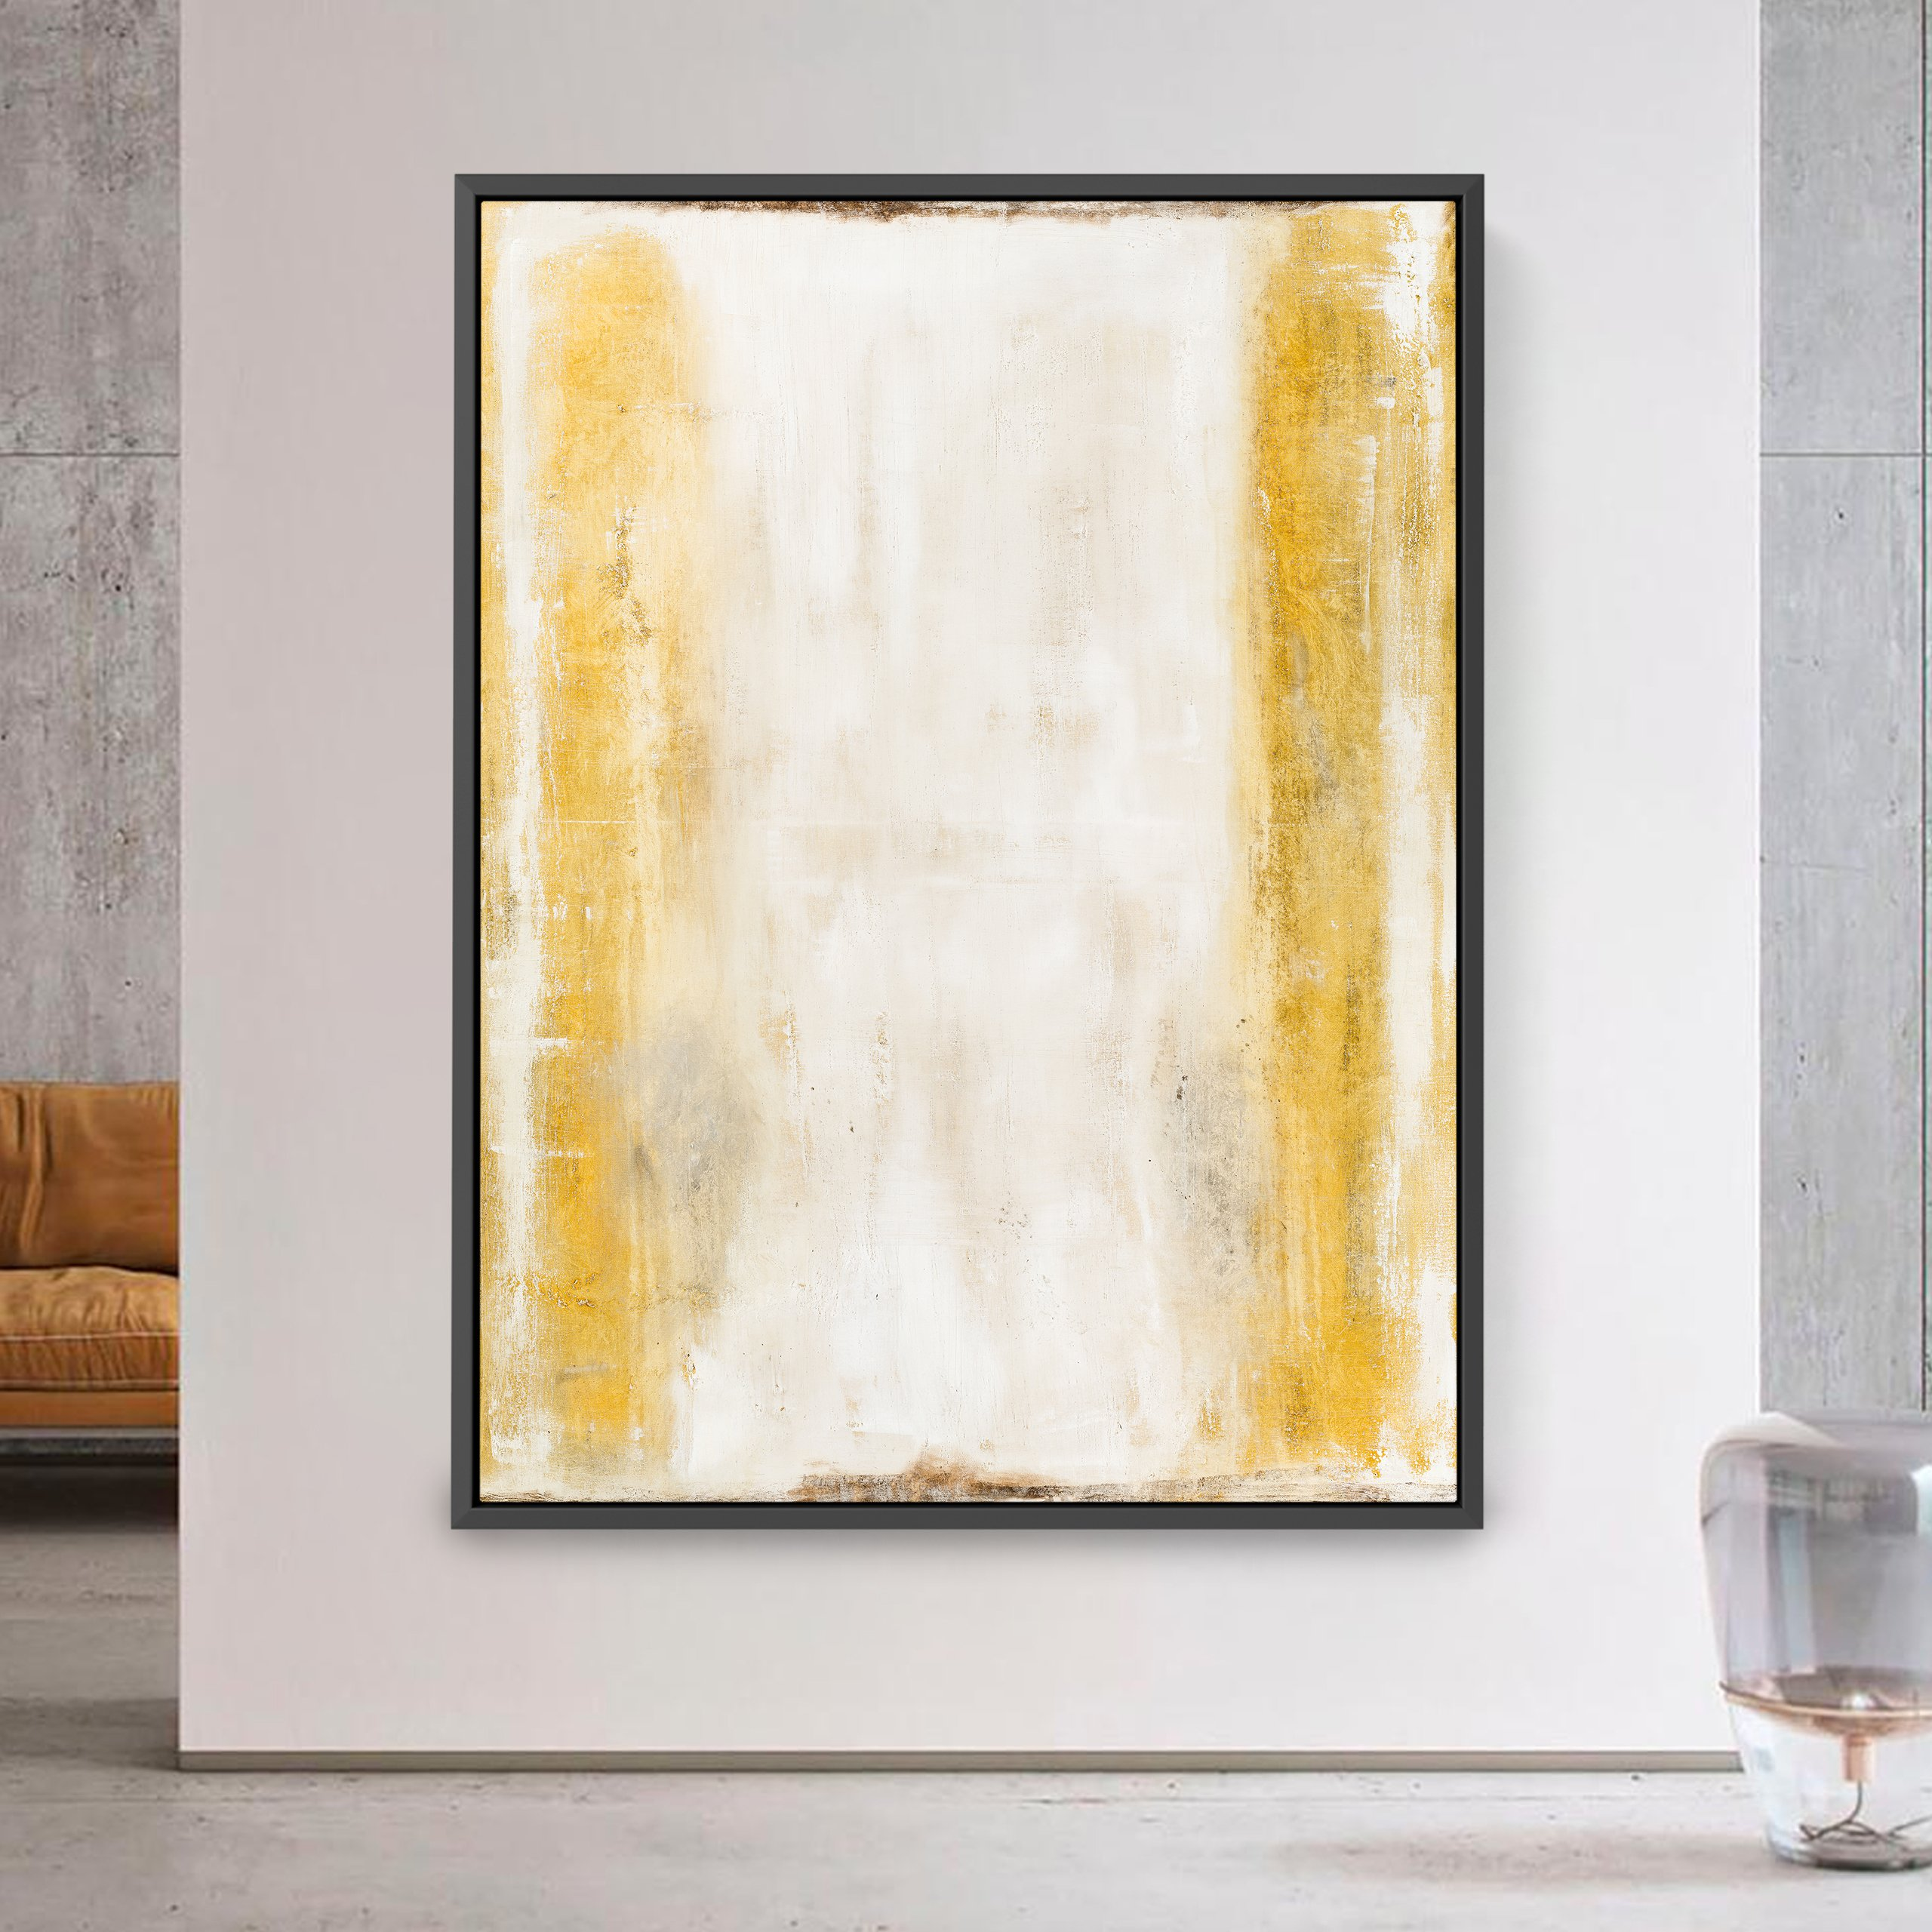 White and gold abstract wall art for interior design